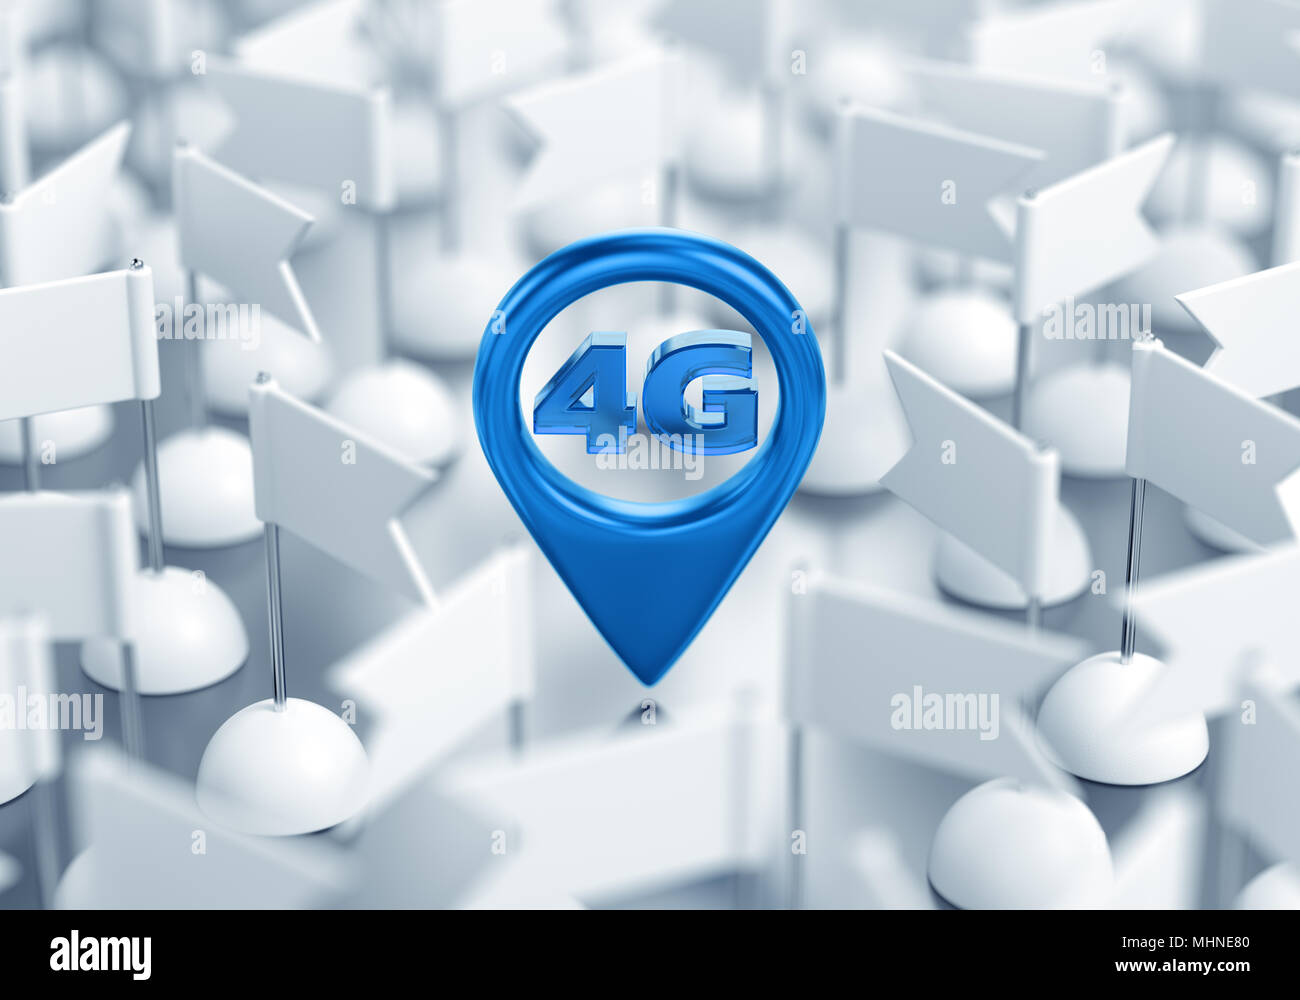 Access Point Location Of 4G Wireless Network - Stock Image